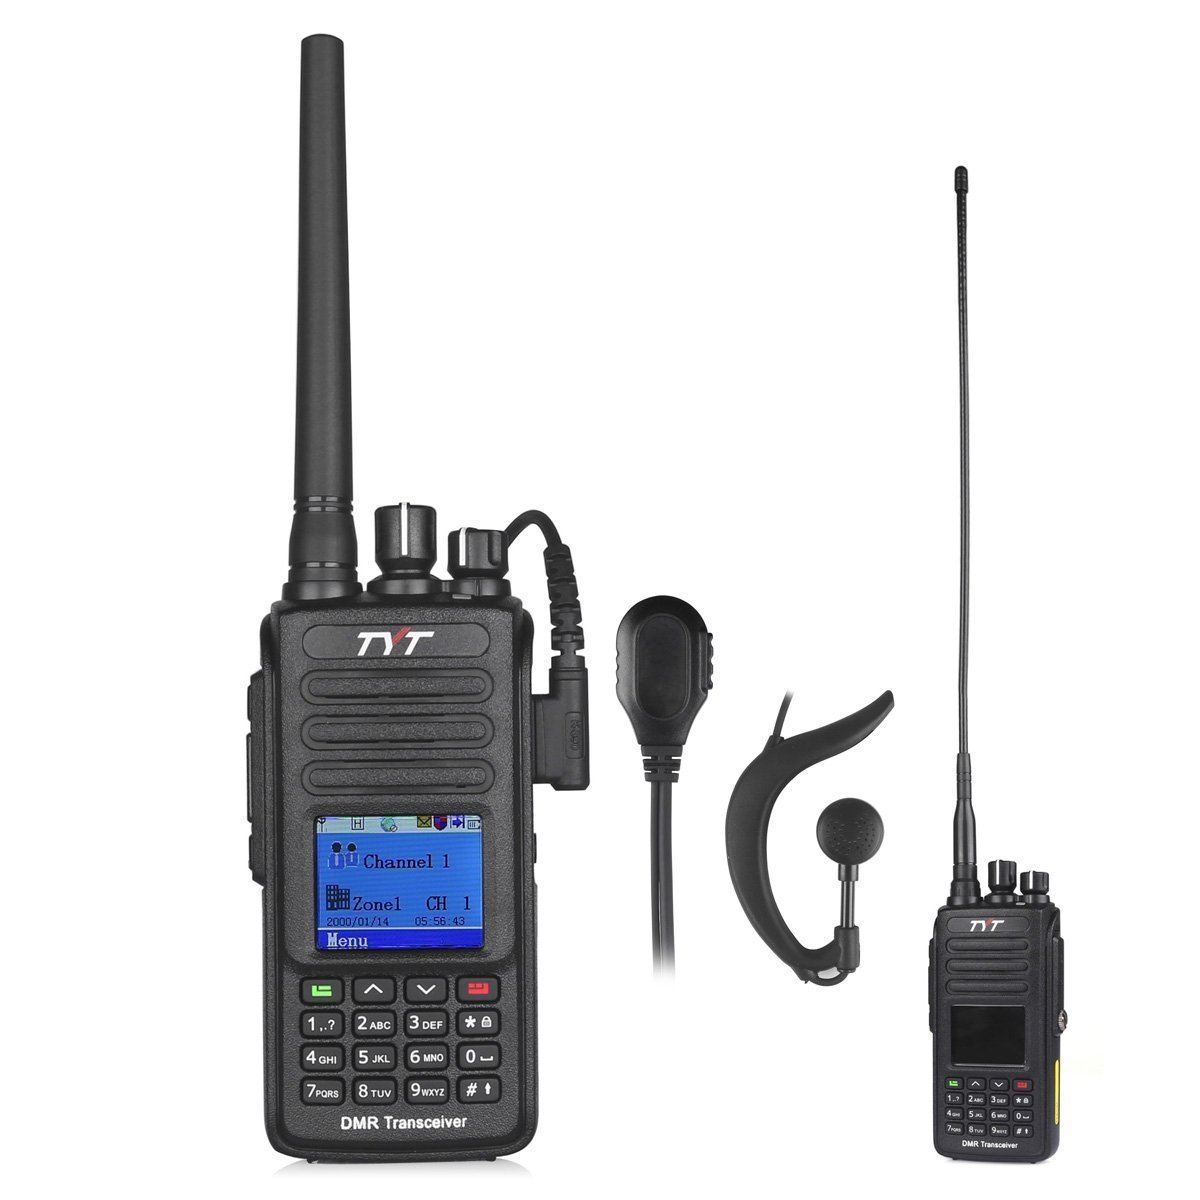 TYT Tytera Upgraded MD-390 DMR Digital Radio, with GPS Function! Waterproof Dustproof IP67 Walkie Talkie Transceiver, UHF 400-480MHz Two-Way Radio, Compatible with Mototrbo, with 2 Antenna, Black